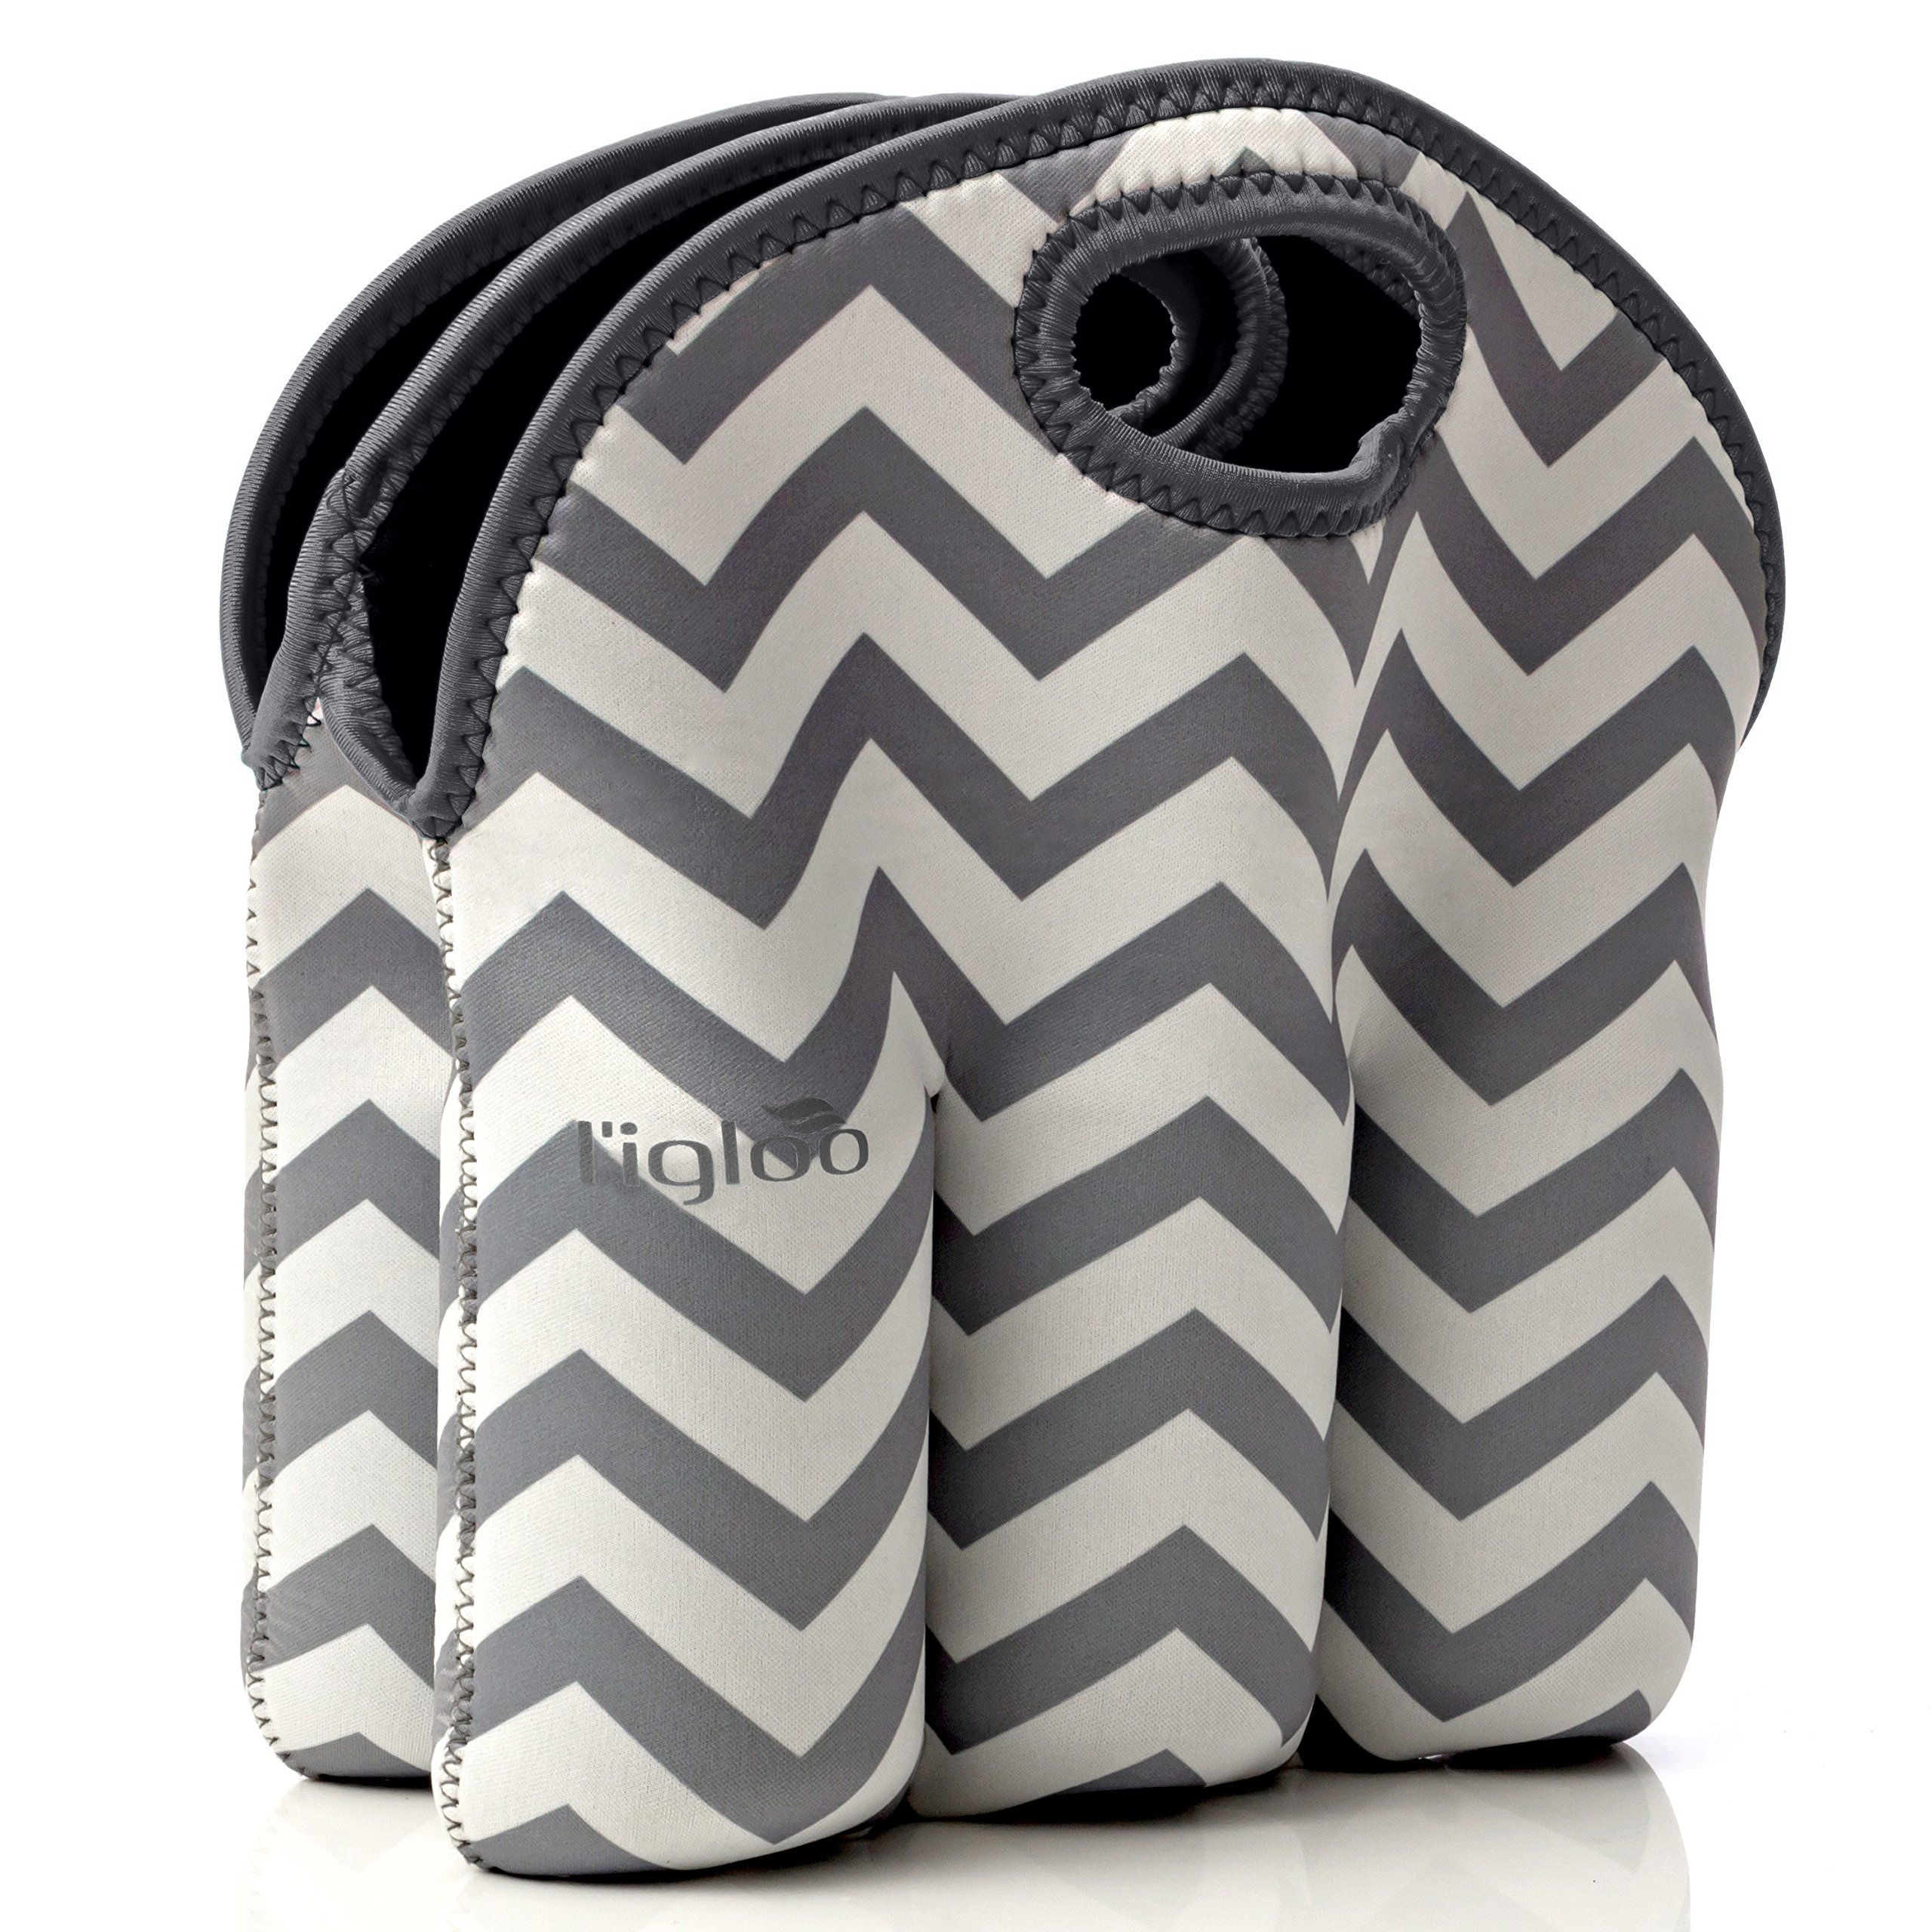 Neoprene 6 Pack Bottle Carrier, Extra Thick Insulated Baby Bottle Cooler Bag Keeps Baby Bottles Cold or Warm Great as Baby Shower Gift (Gray Chevron Gray Trim)